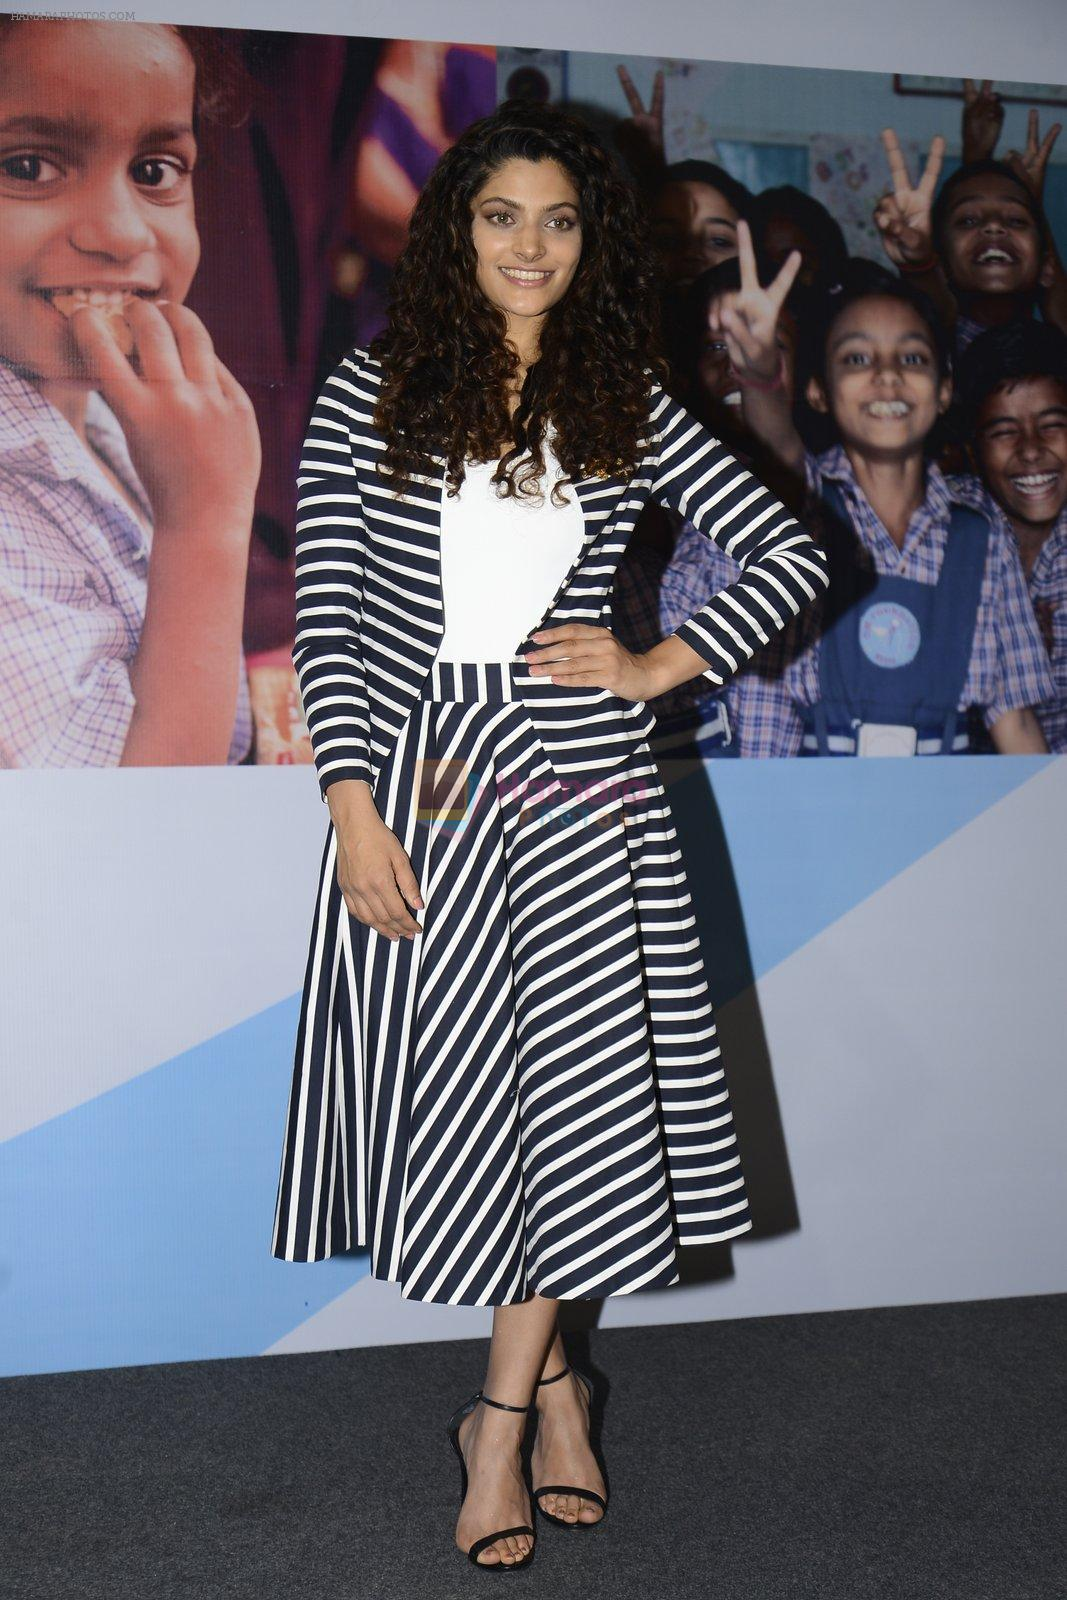 Saiyami Kher for world food day event by smile foundation at Quaker on 16th Oct 2016